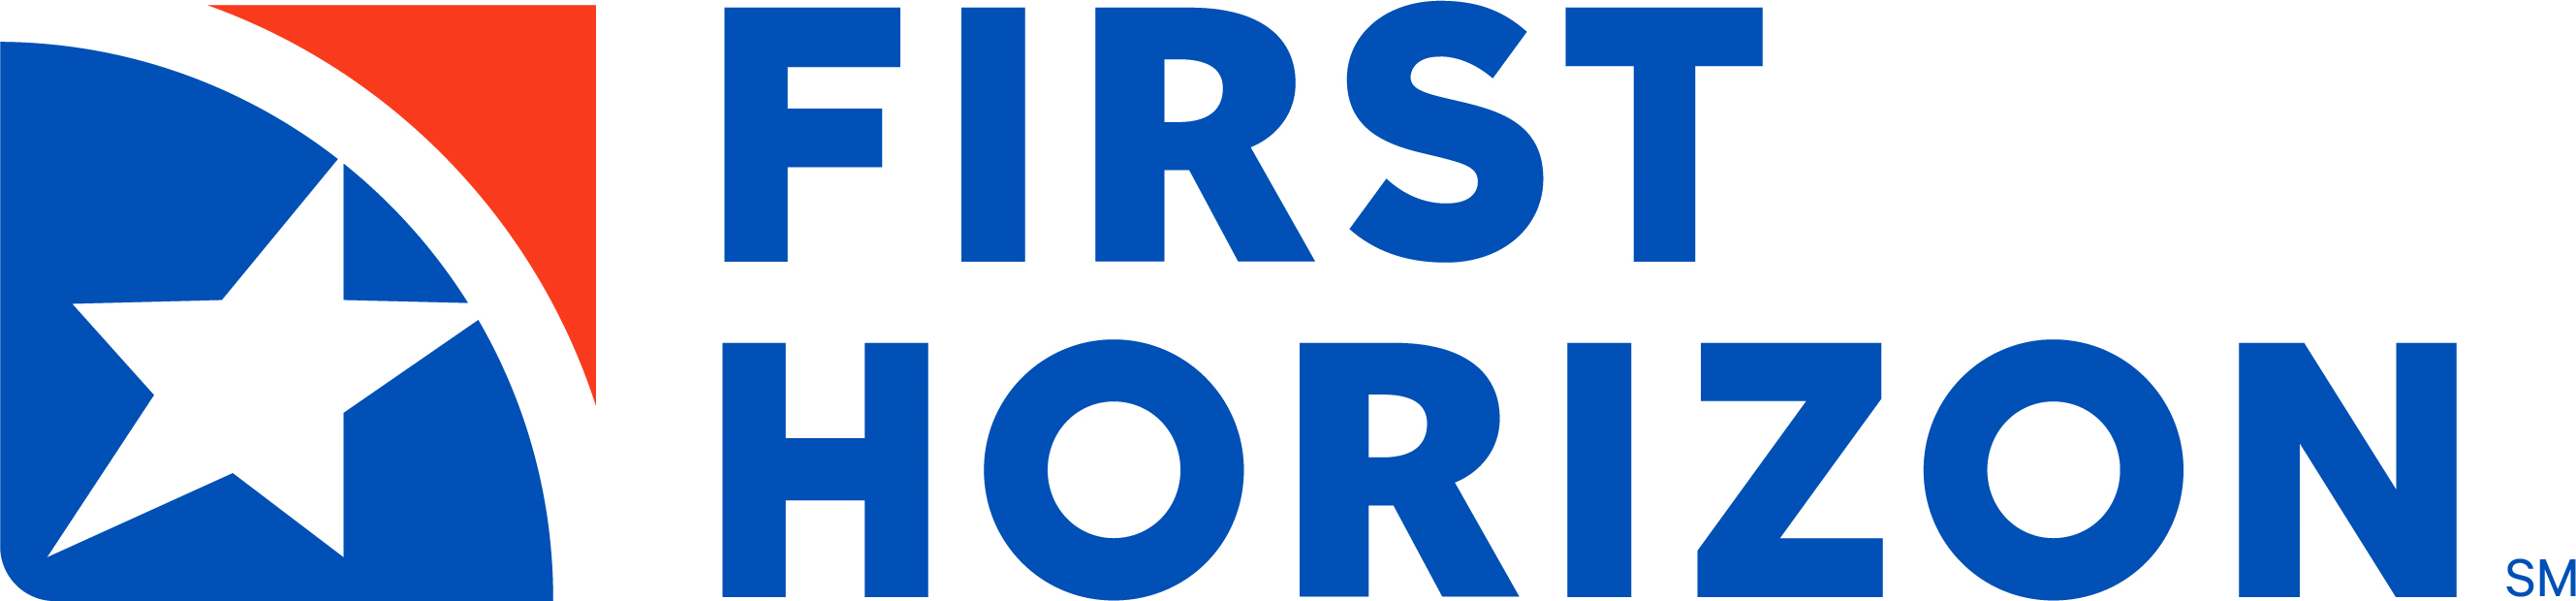 First Horizon Bank Company Logo